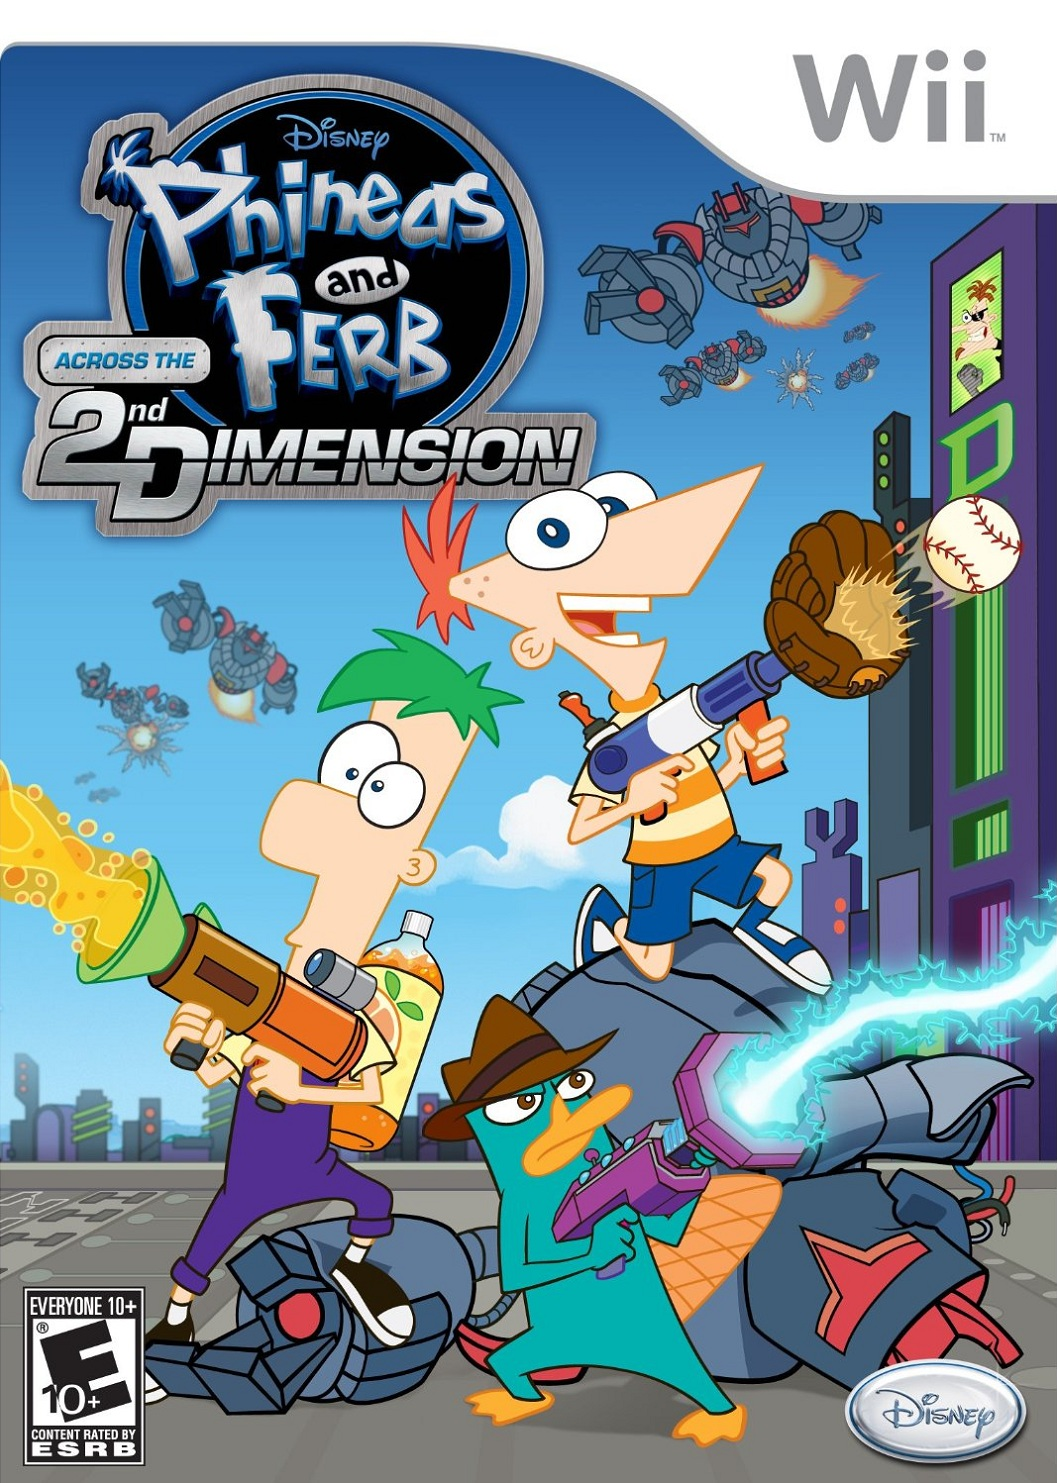 phineas and ferb across the 2nd dimension part 2